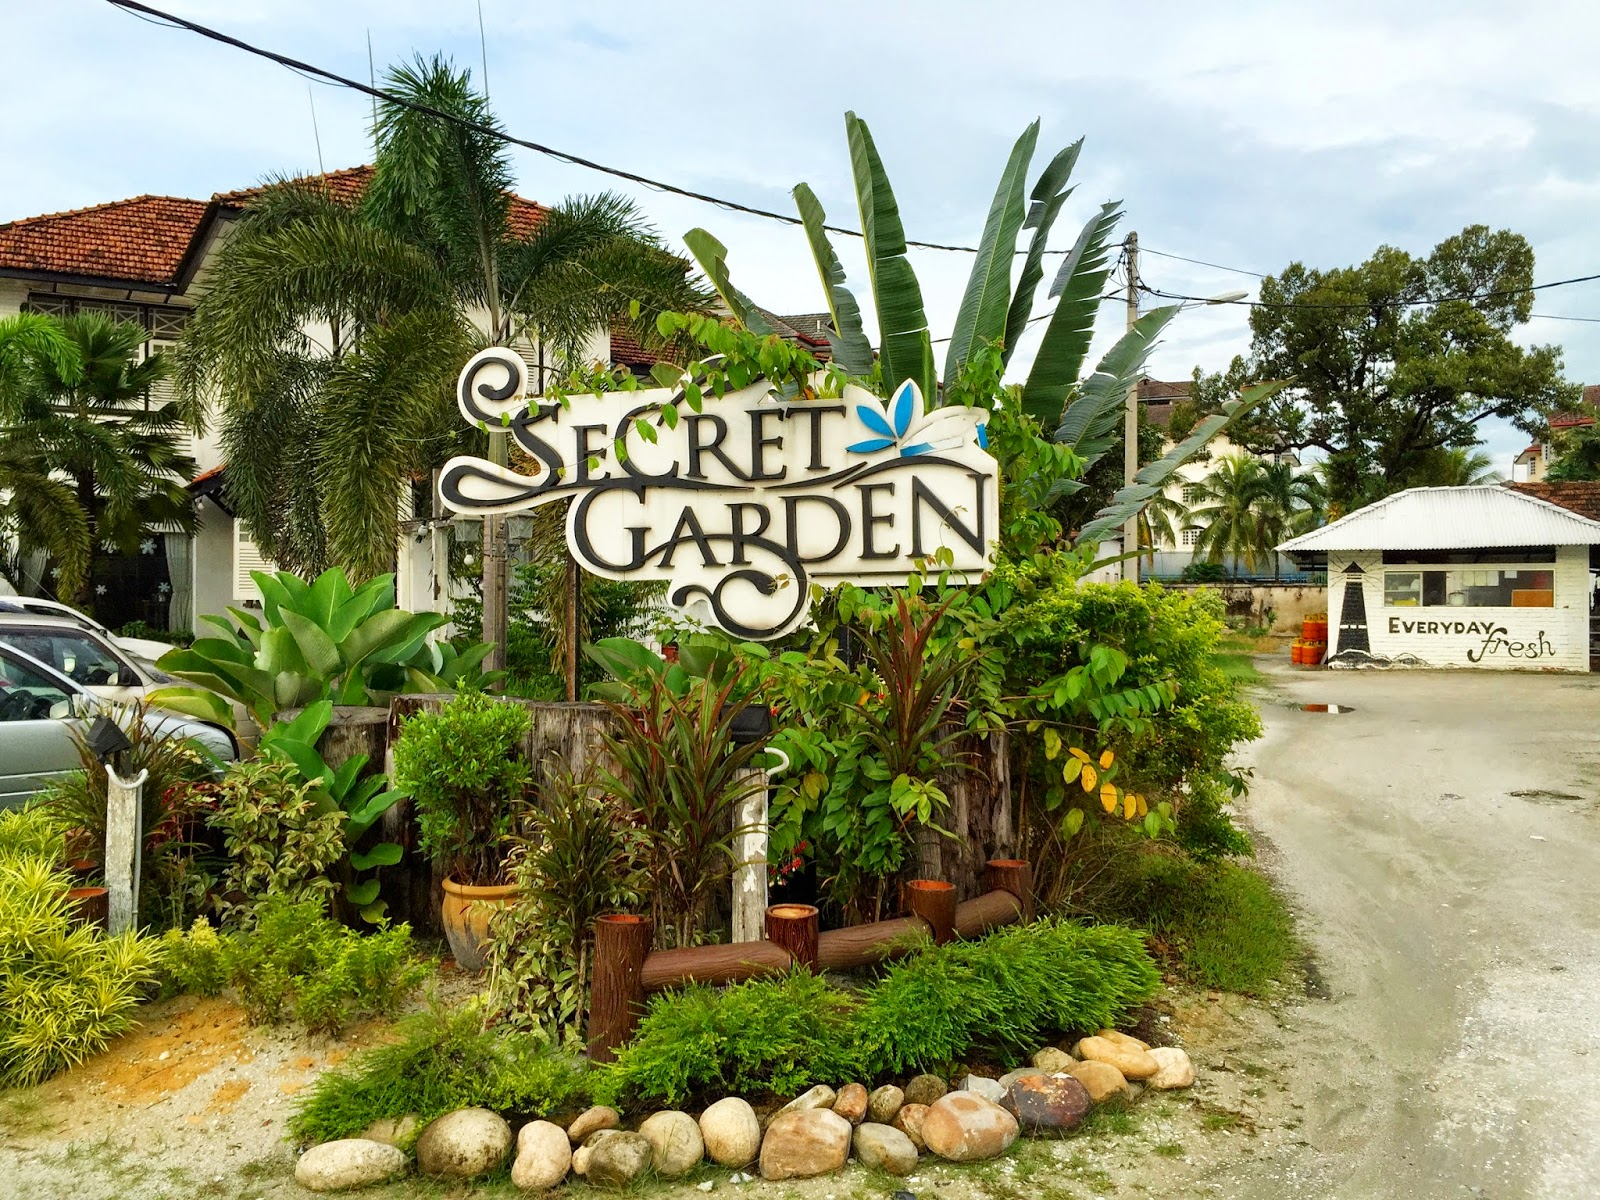 secret garden uses the finest ingredients to make spectacular english french cuisine that paired with an extensive wine lists - Secret Garden Restaurant